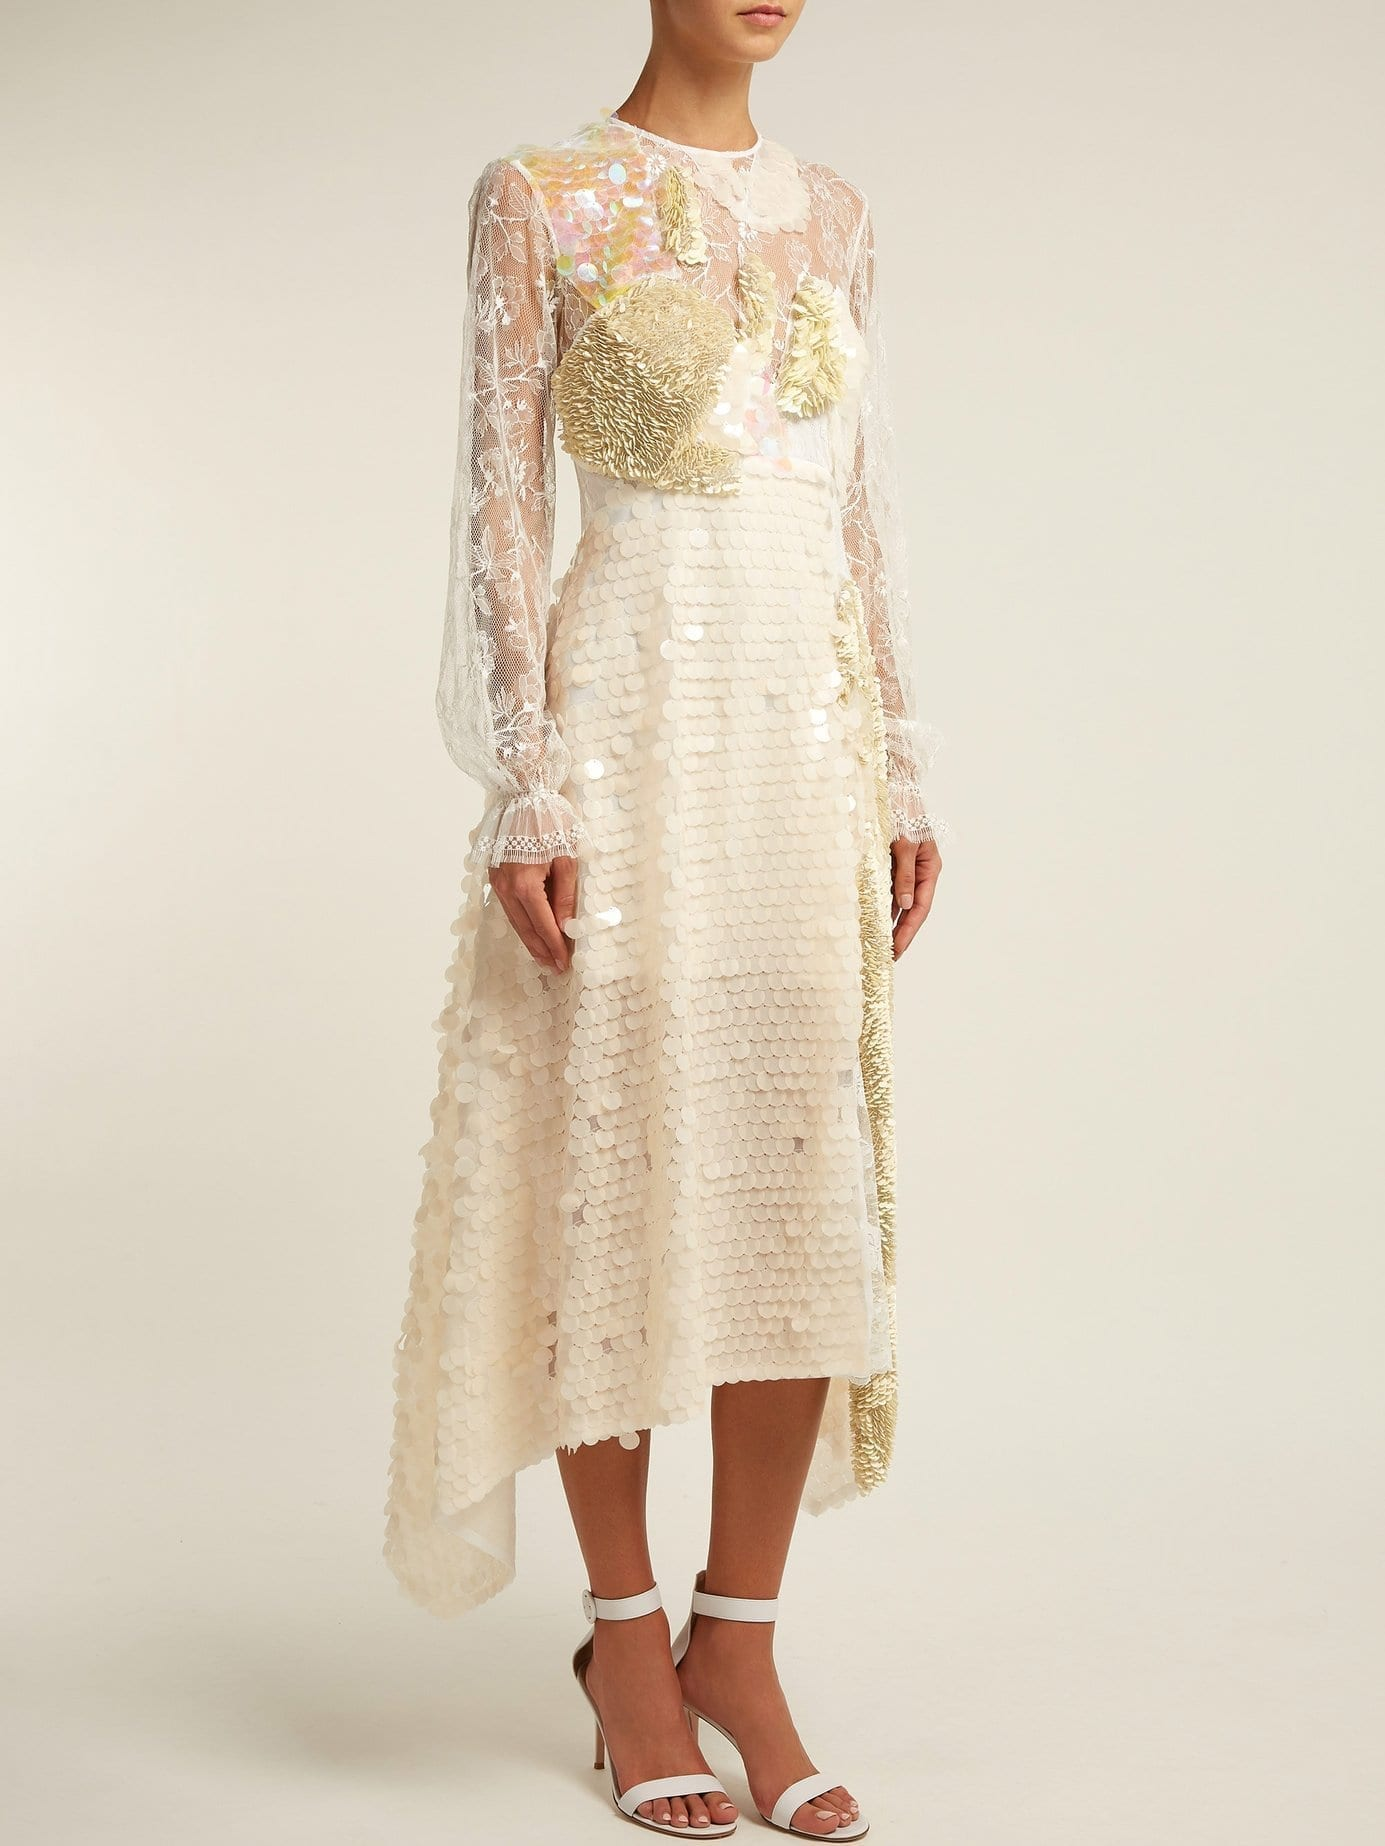 PREEN BY THORNTON BREGAZZI Cara Sequin-embellished Lace Ivory Dress